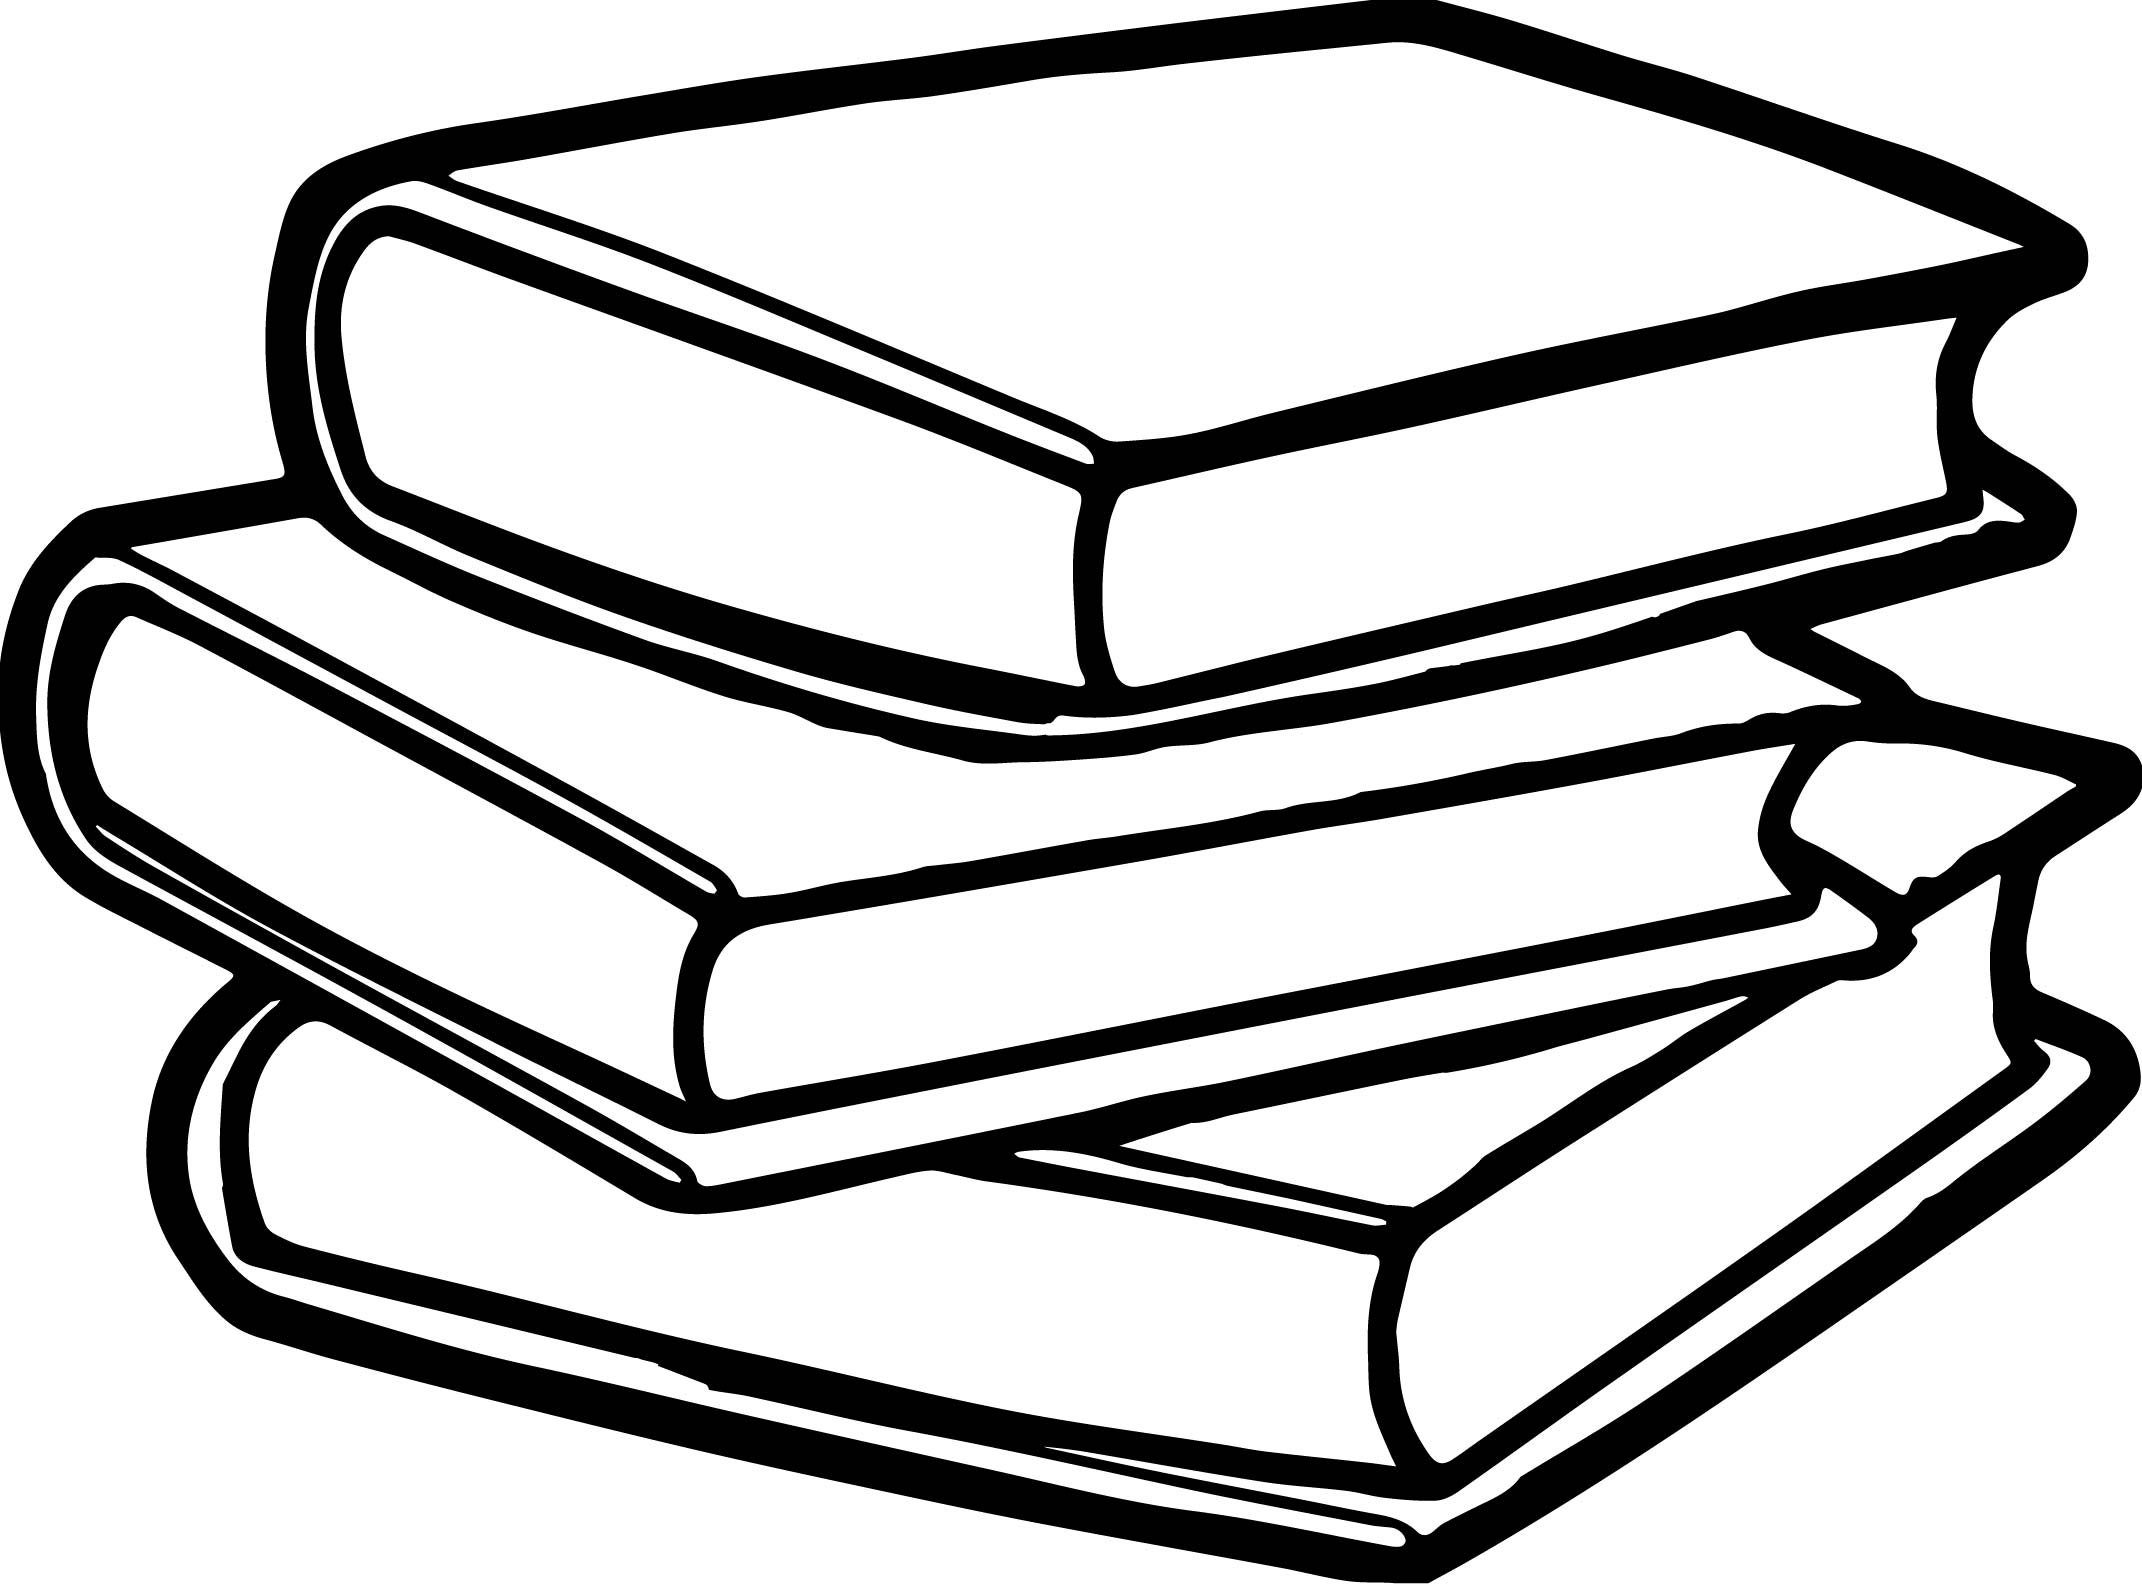 Abc Books Coloring Page Wecoloringpage Book Colouring Pages